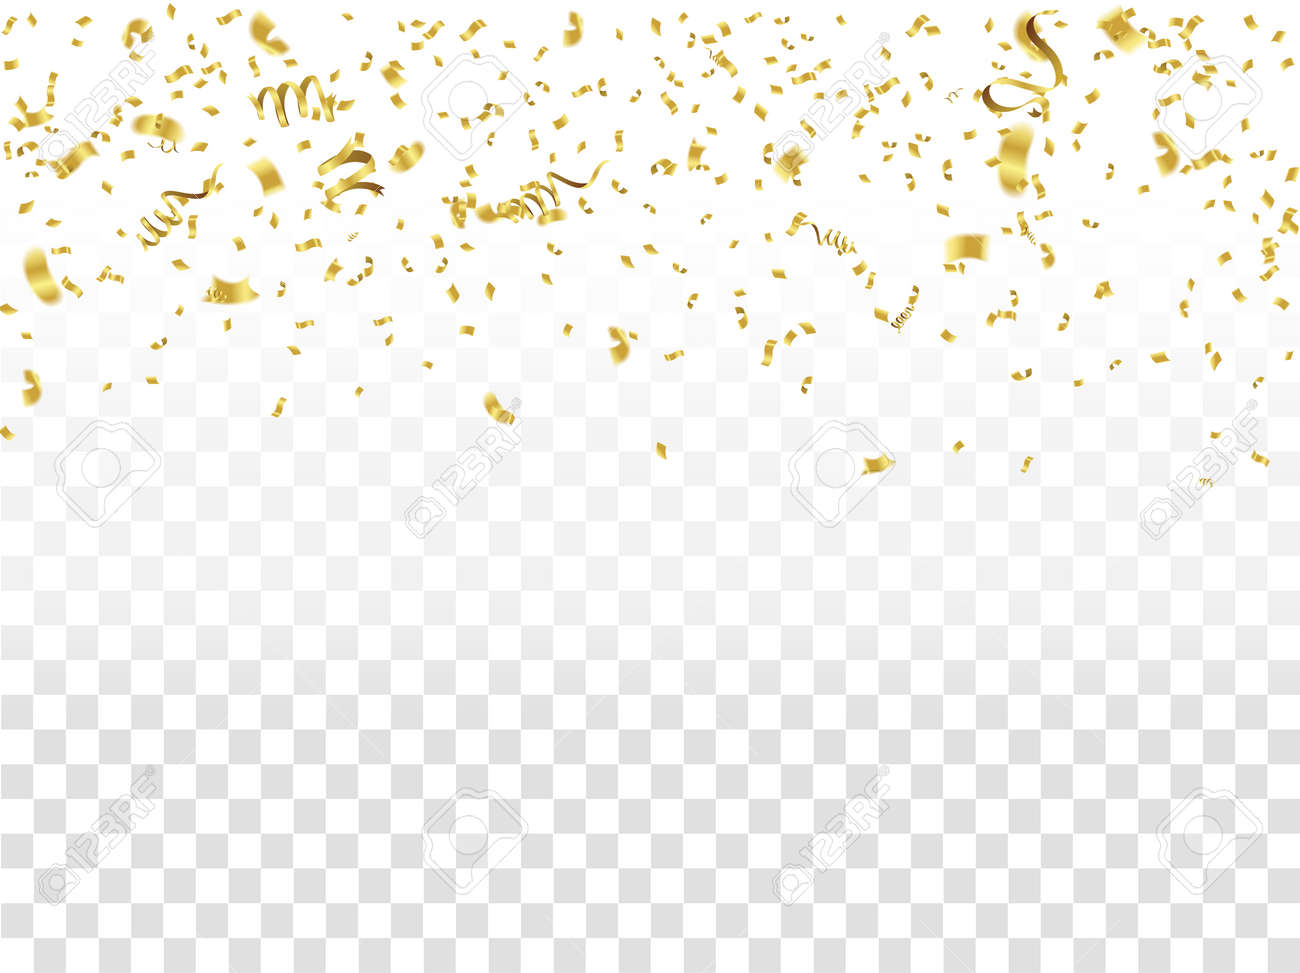 abstract background celebration gold